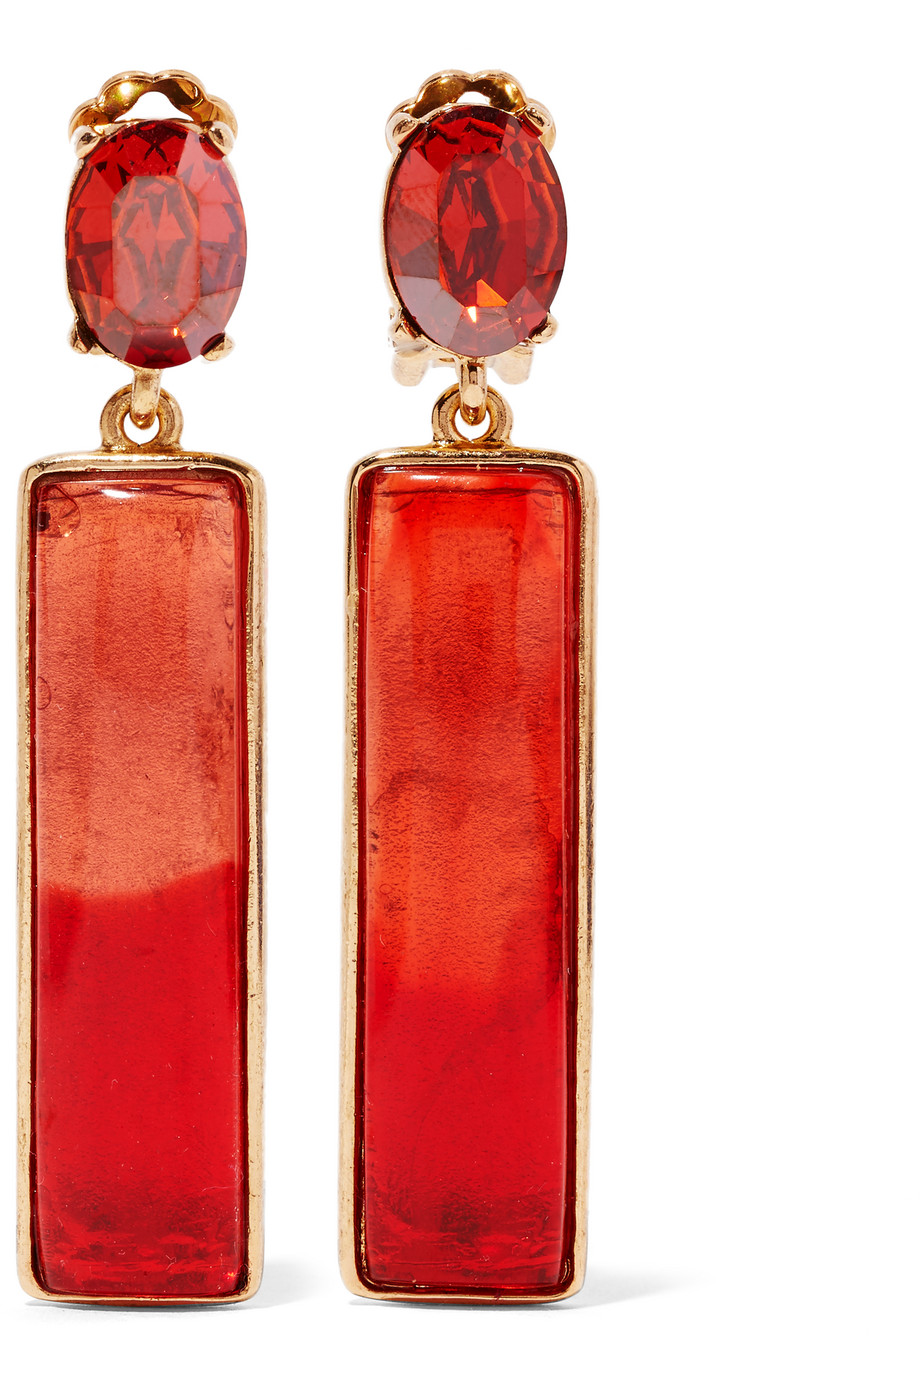 Oscar De La Renta Gold-Plated, Resin and Crystal Earrings, Red, Women's